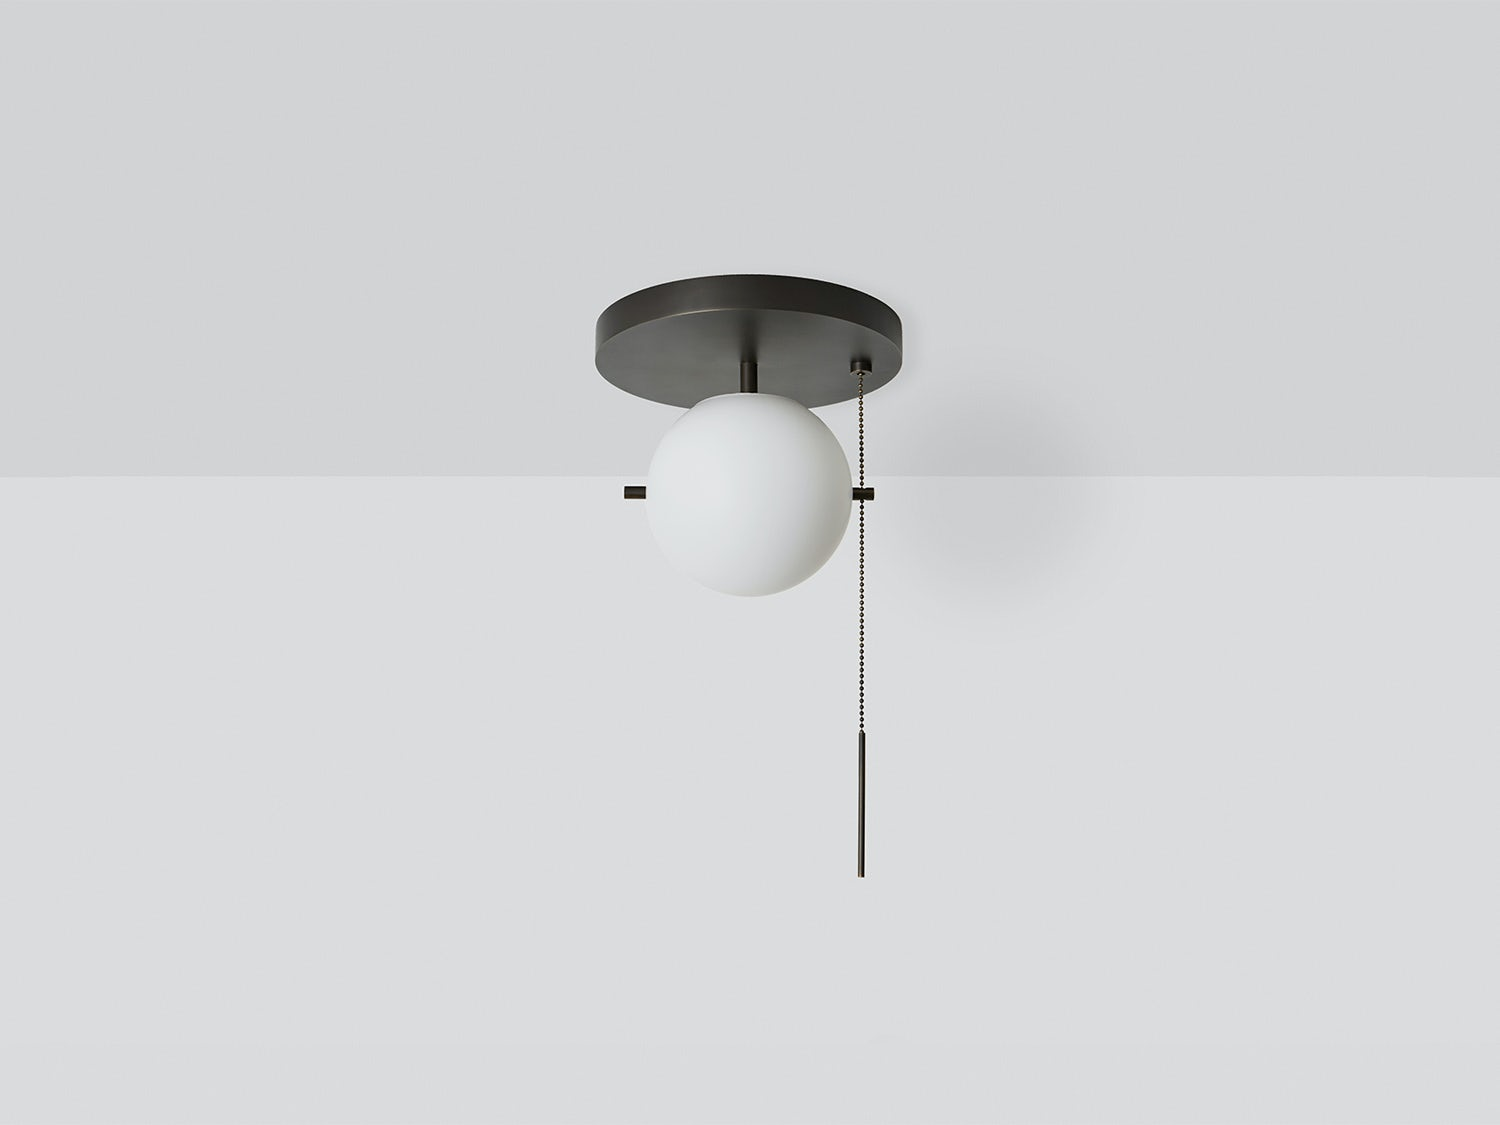 gallery image for Signal Flush Mount